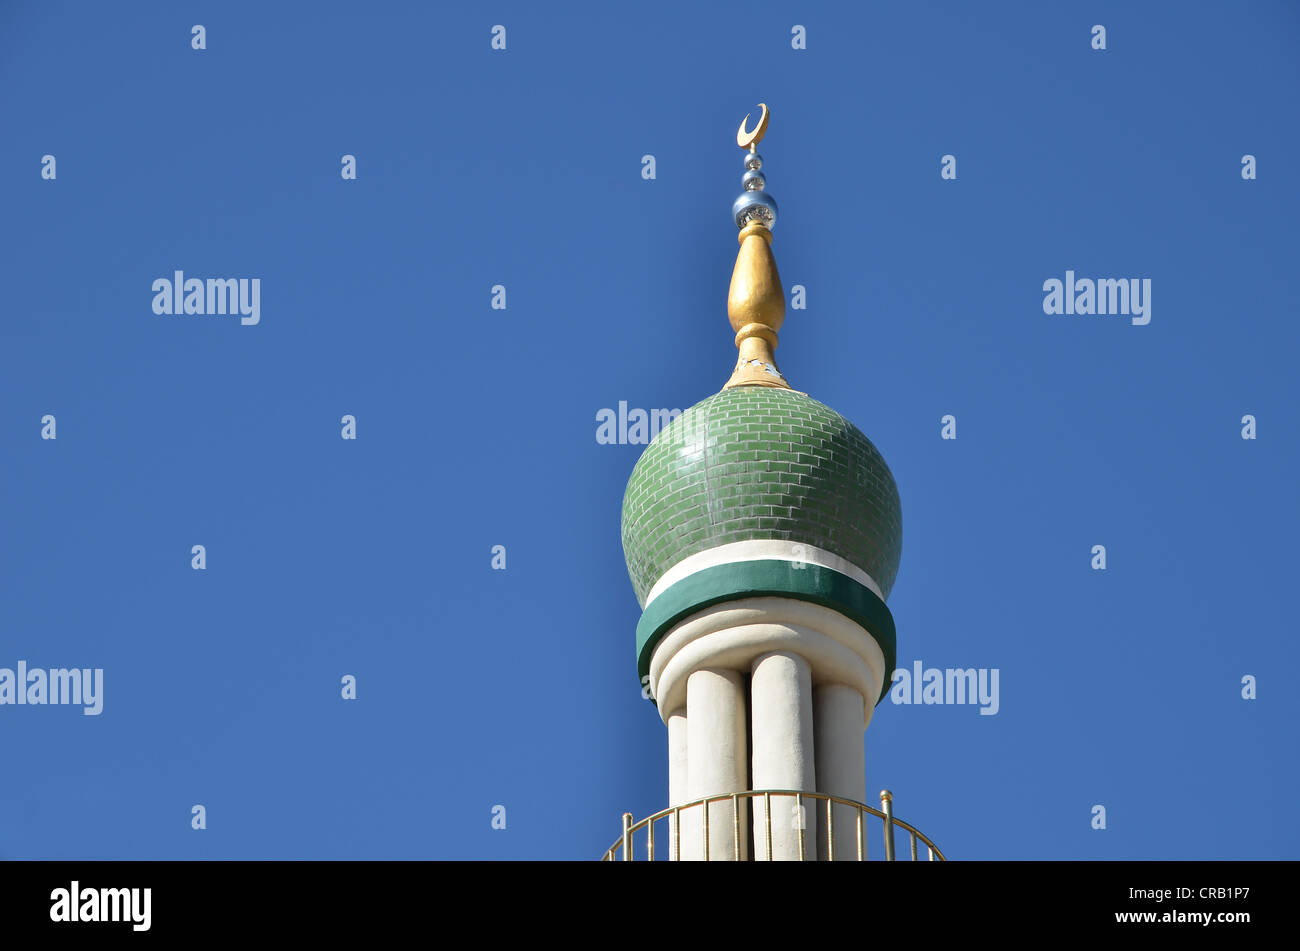 Minaret of the mosque in Lhasa, central Tibet, Tibet, China, Asia - Stock Image